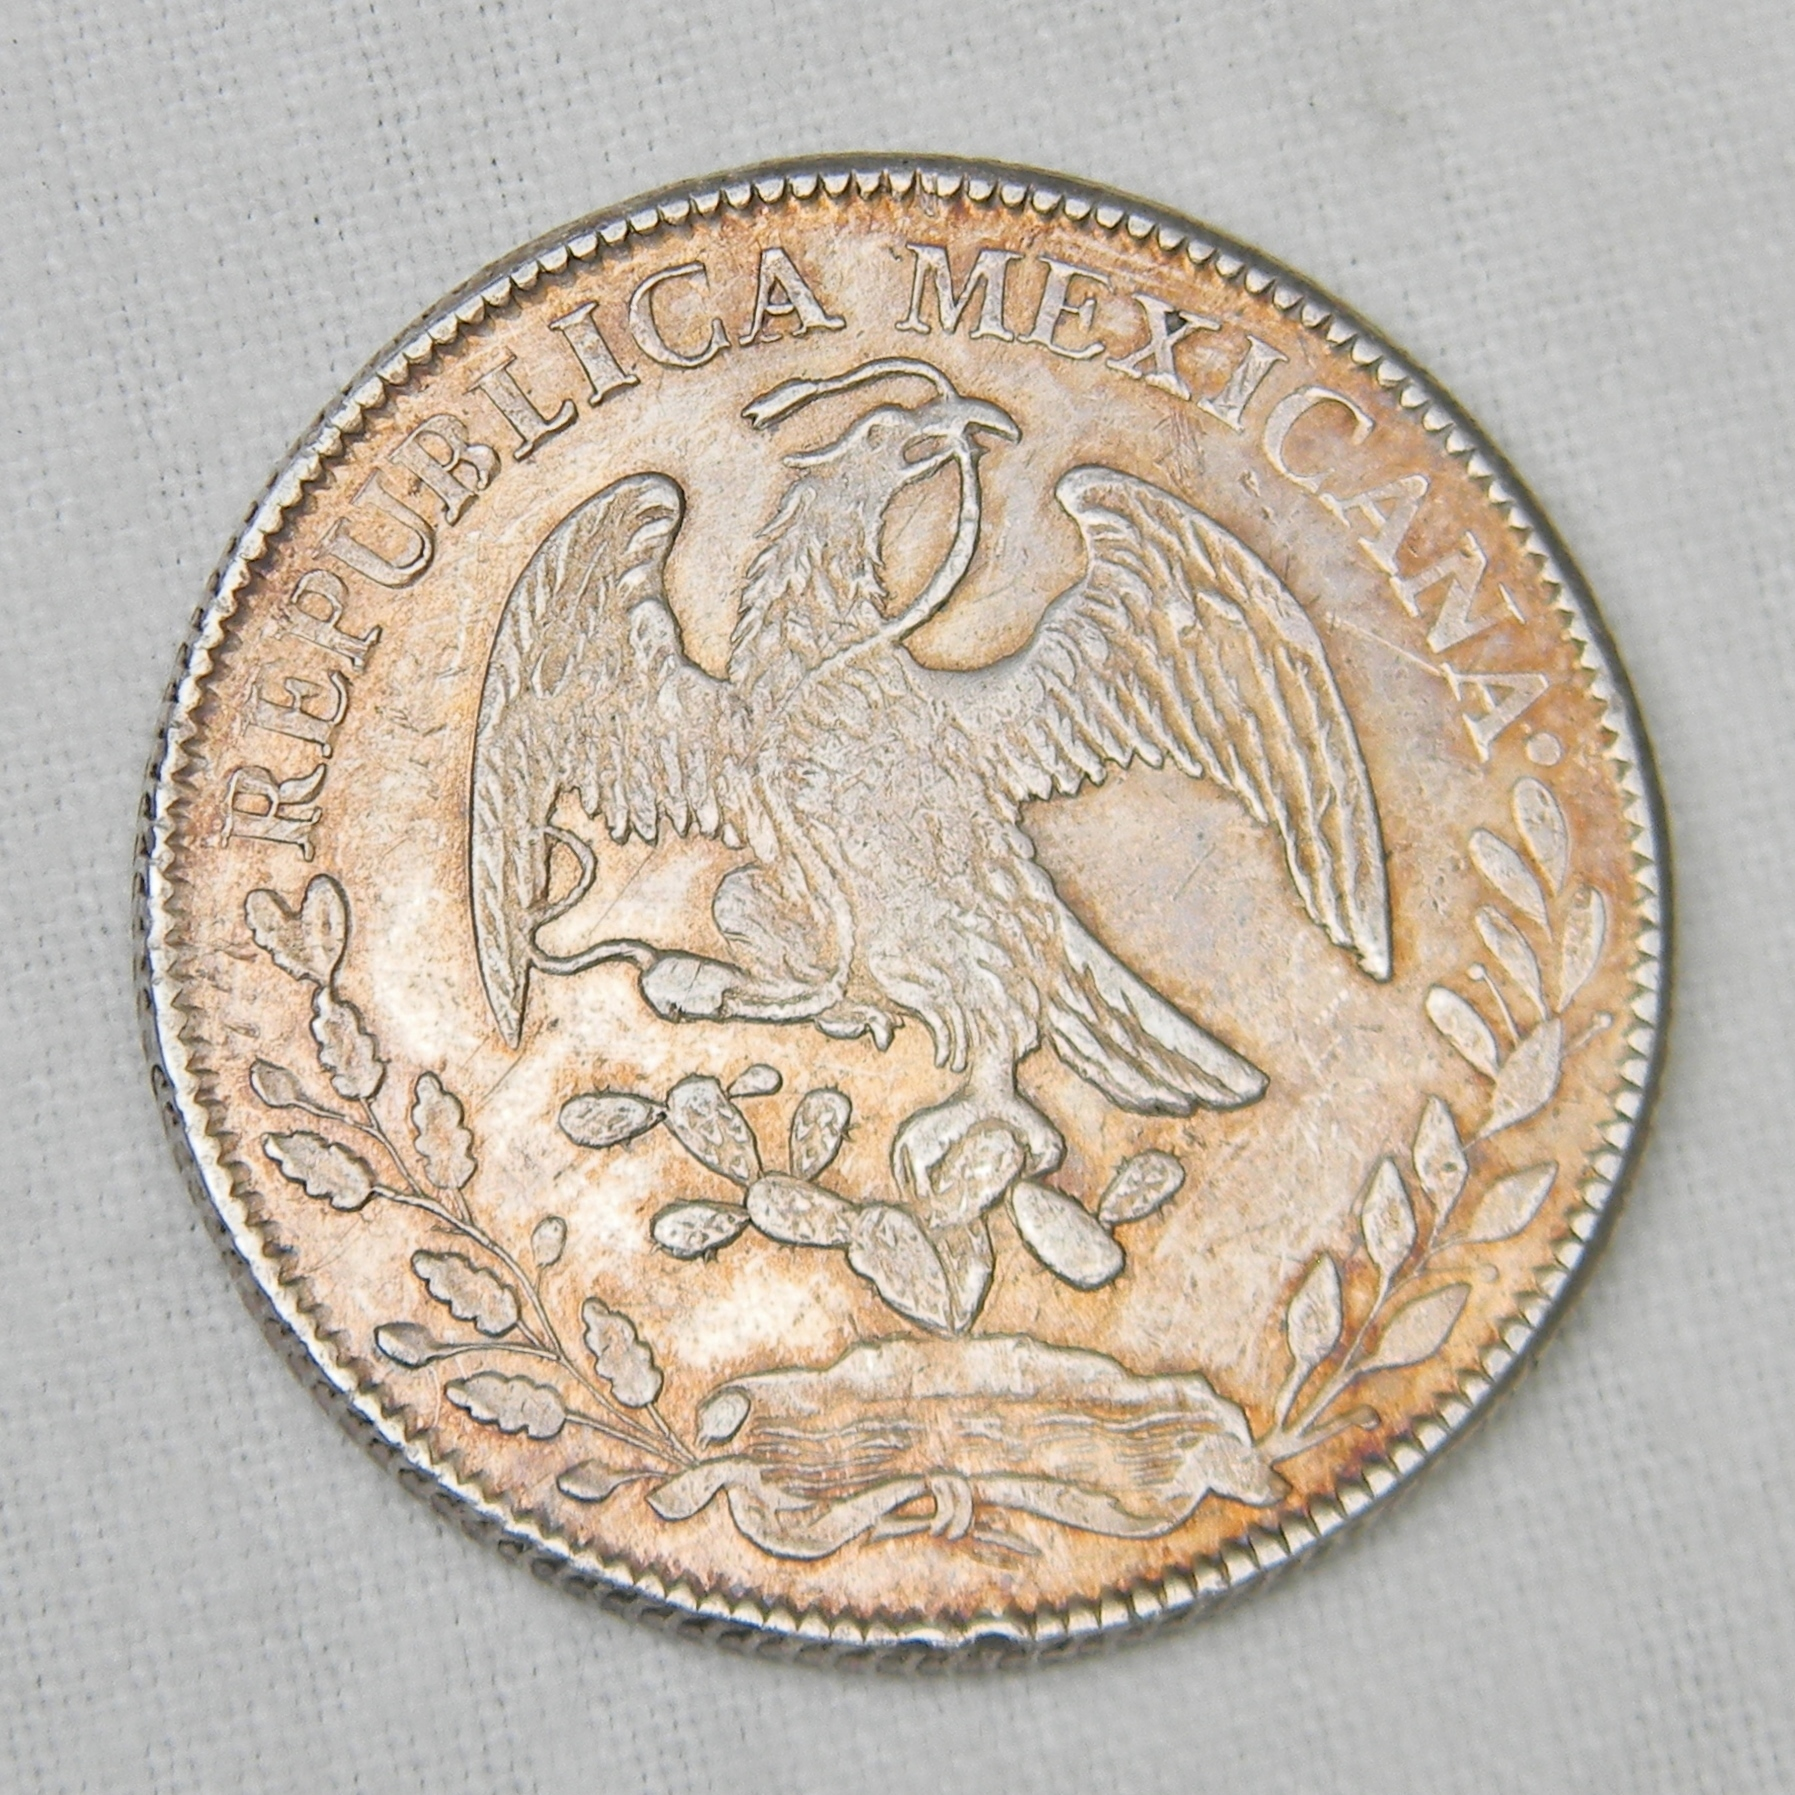 MEXICO Large 1845Zs OM Silver 8 Reales Coin